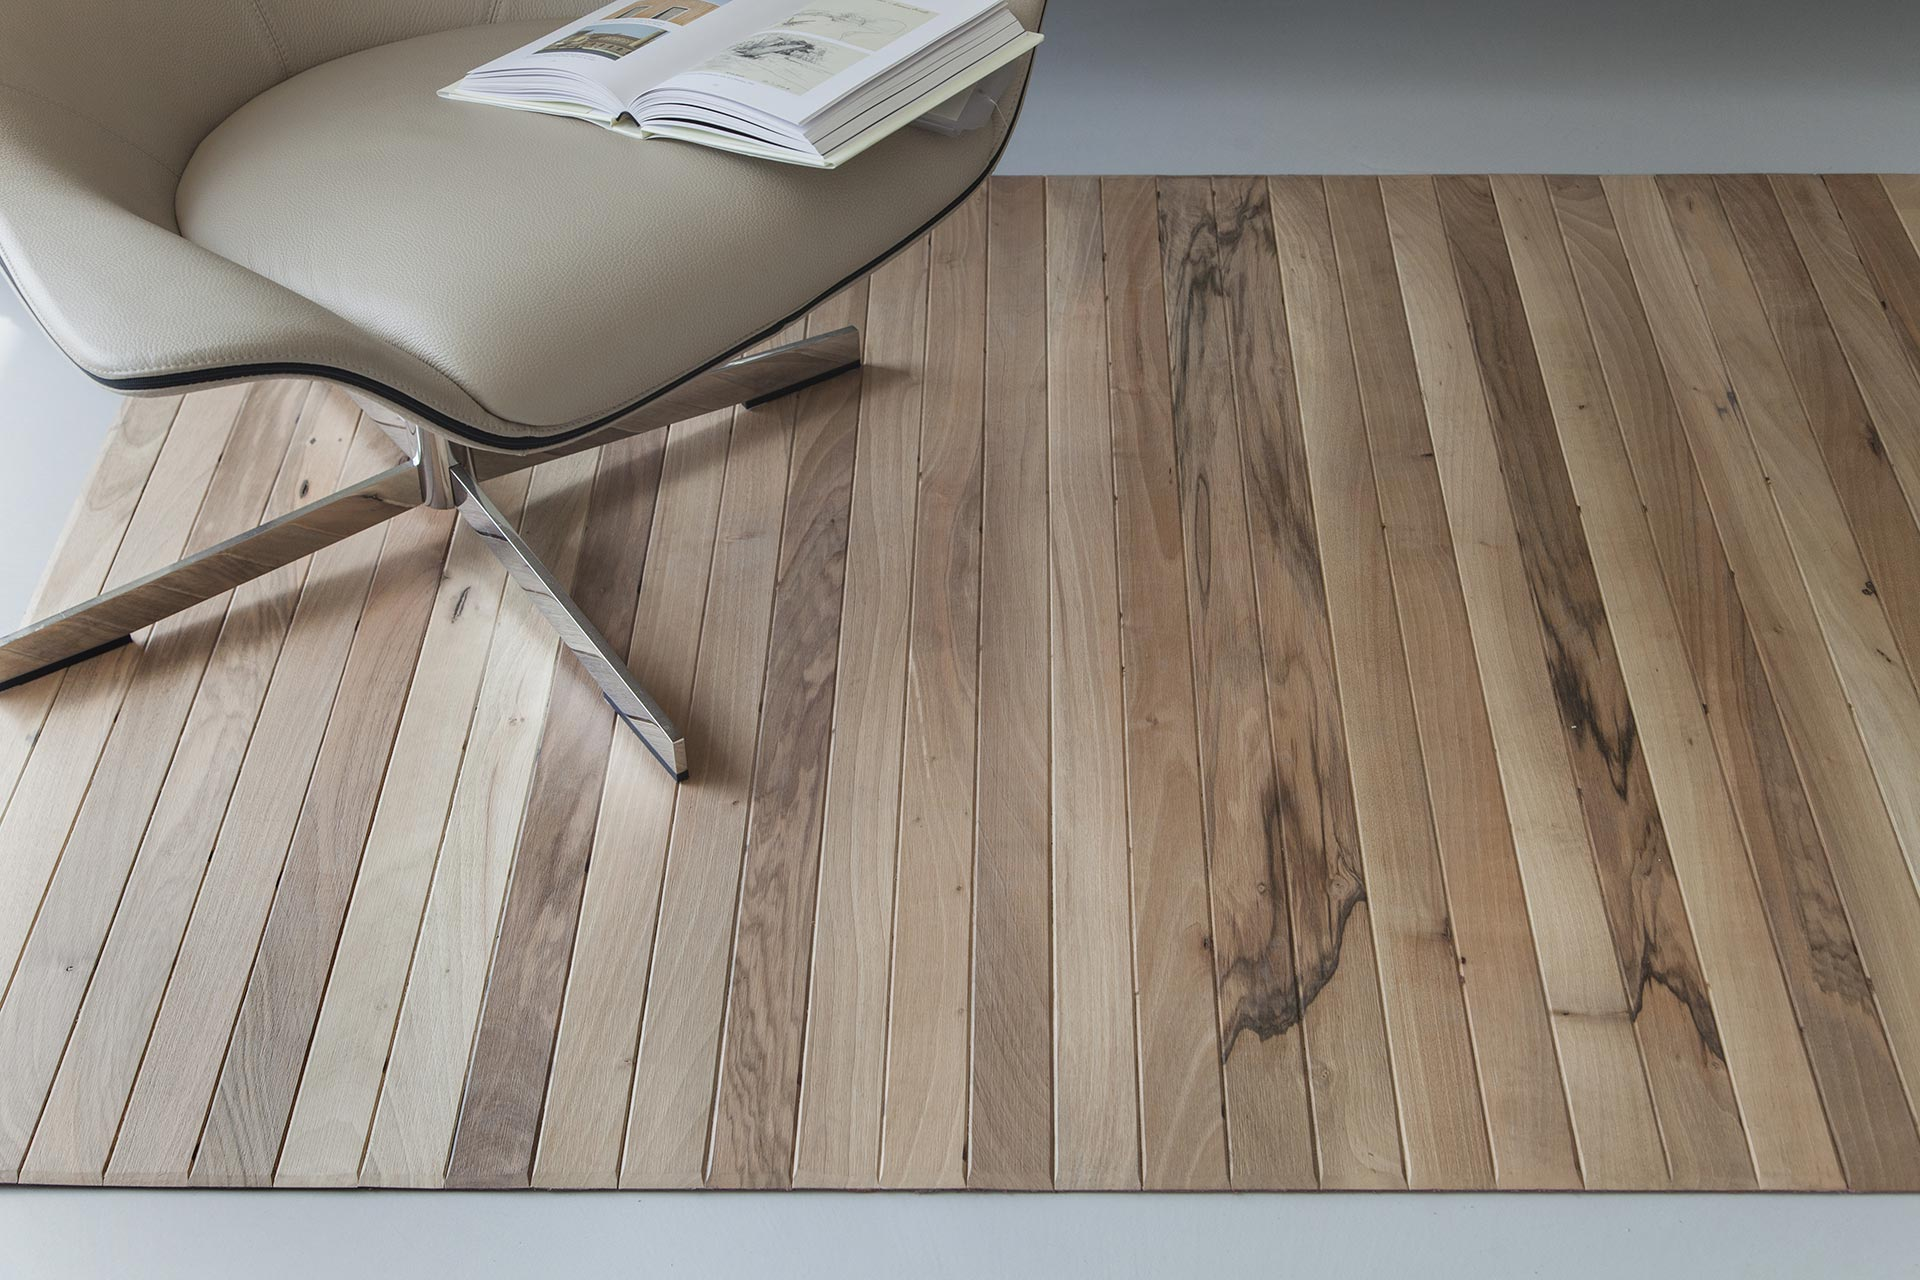 Tappeti in Legno by Schinco Parquet. Tappeti Made in Italy